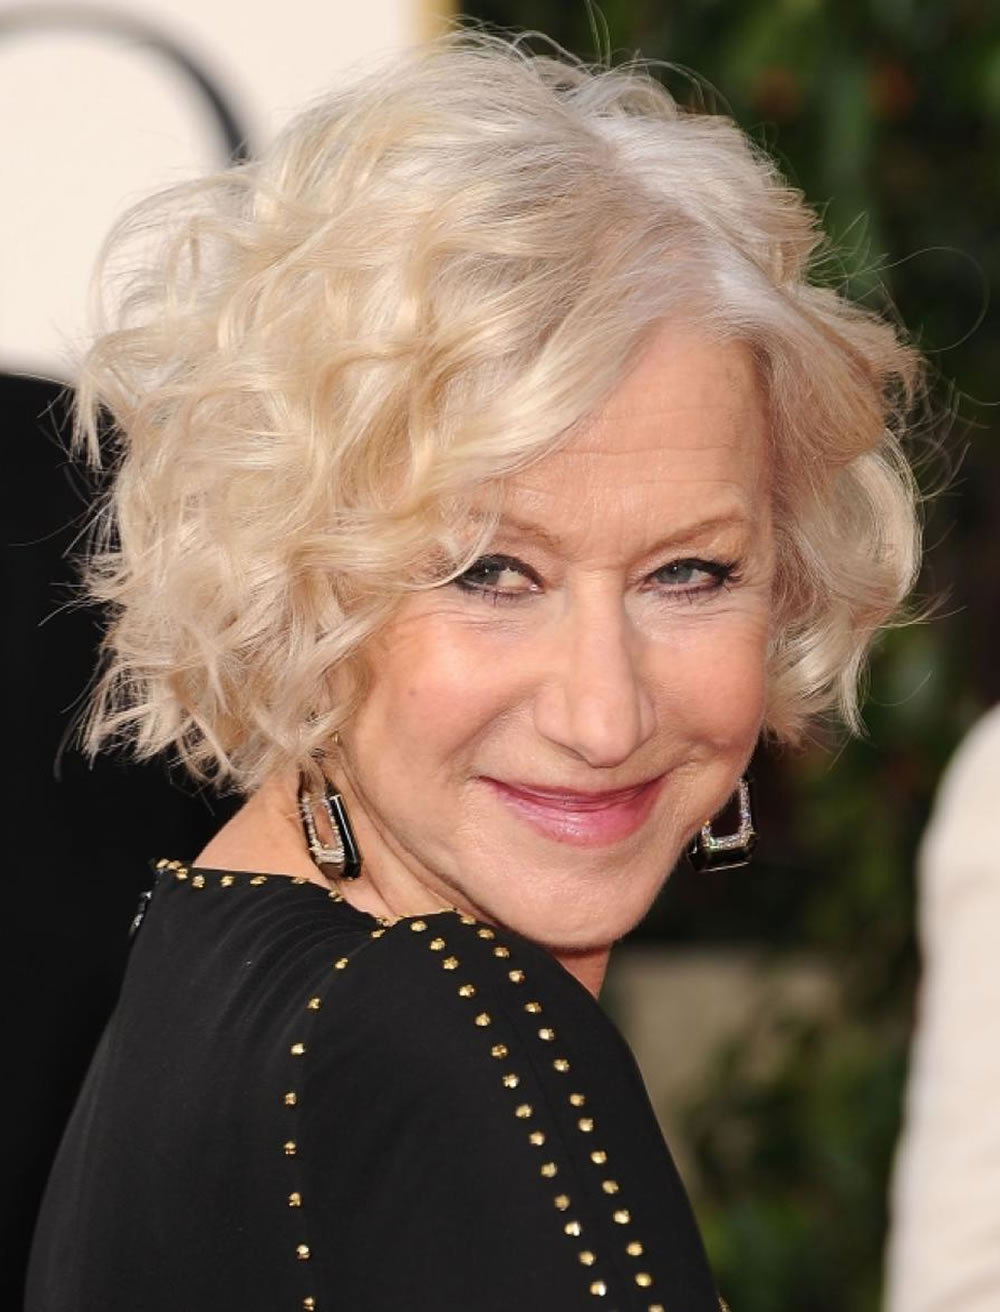 Bob Hairstyles For Older Women Over 40 To 60 Years 2017 2018 – Page For Short Curly Hairstyles For Over (View 18 of 25)